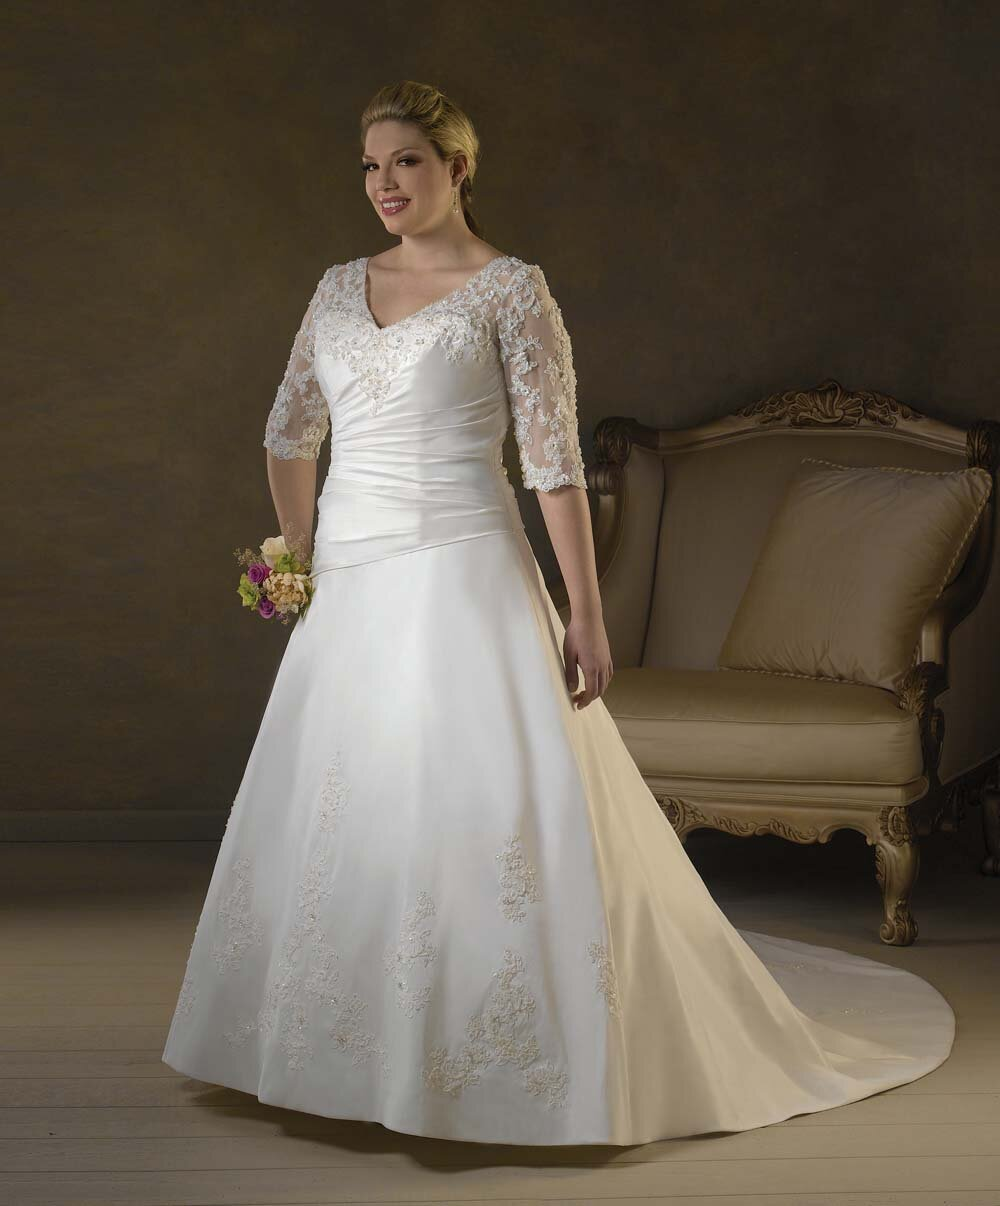 Plus Size Vintage Style Wedding Dresses Pictures Ideas Guide To